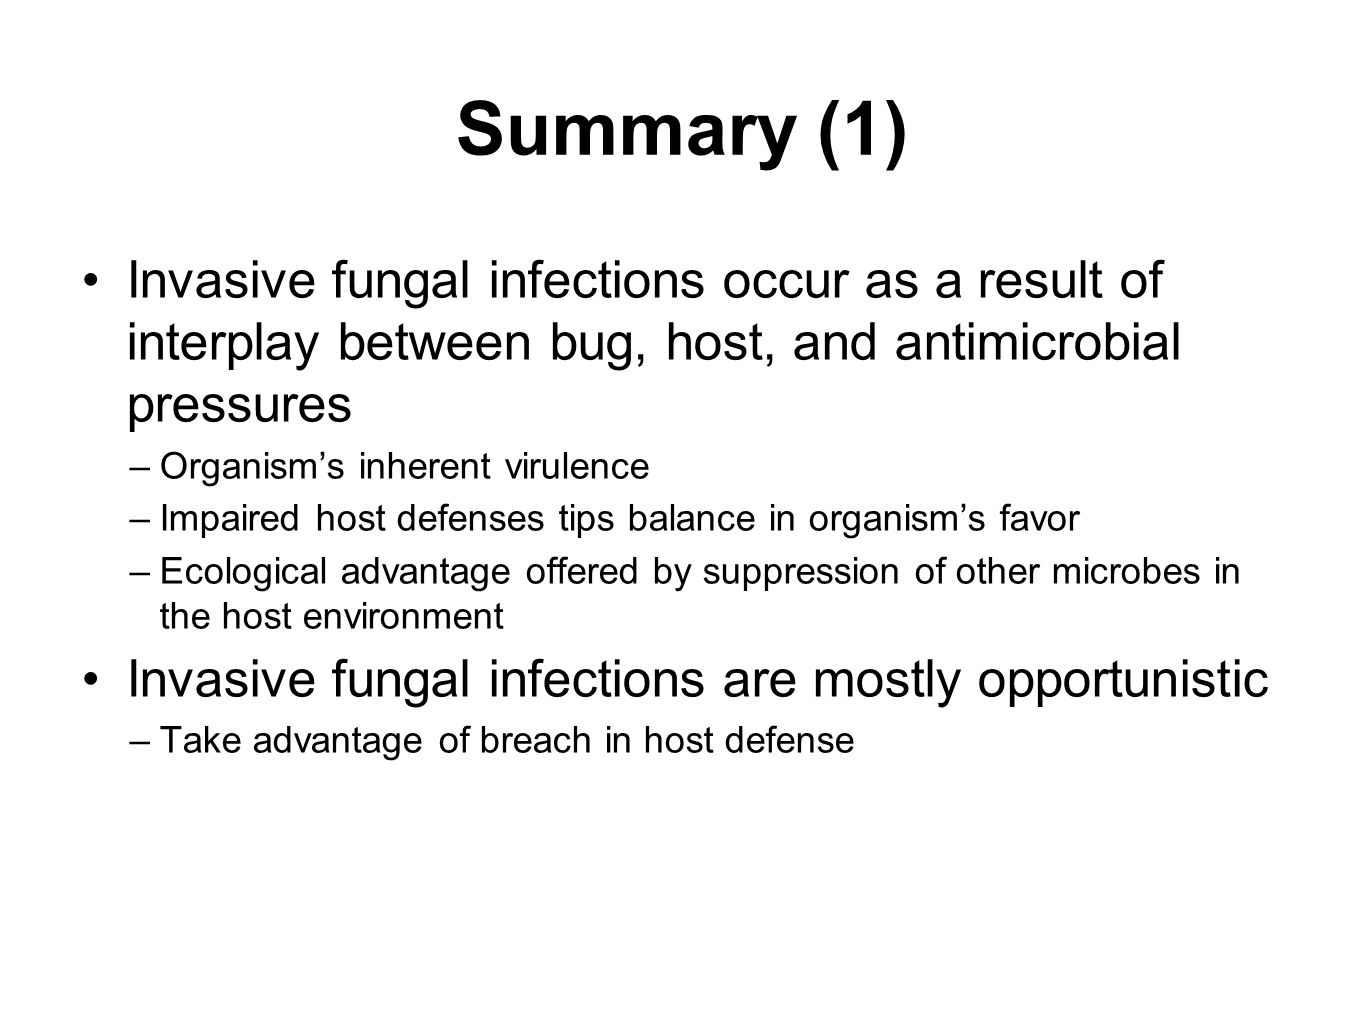 Summary (1) Invasive fungal infections occur as a result of interplay between bug, host, and antimicrobial pressures.